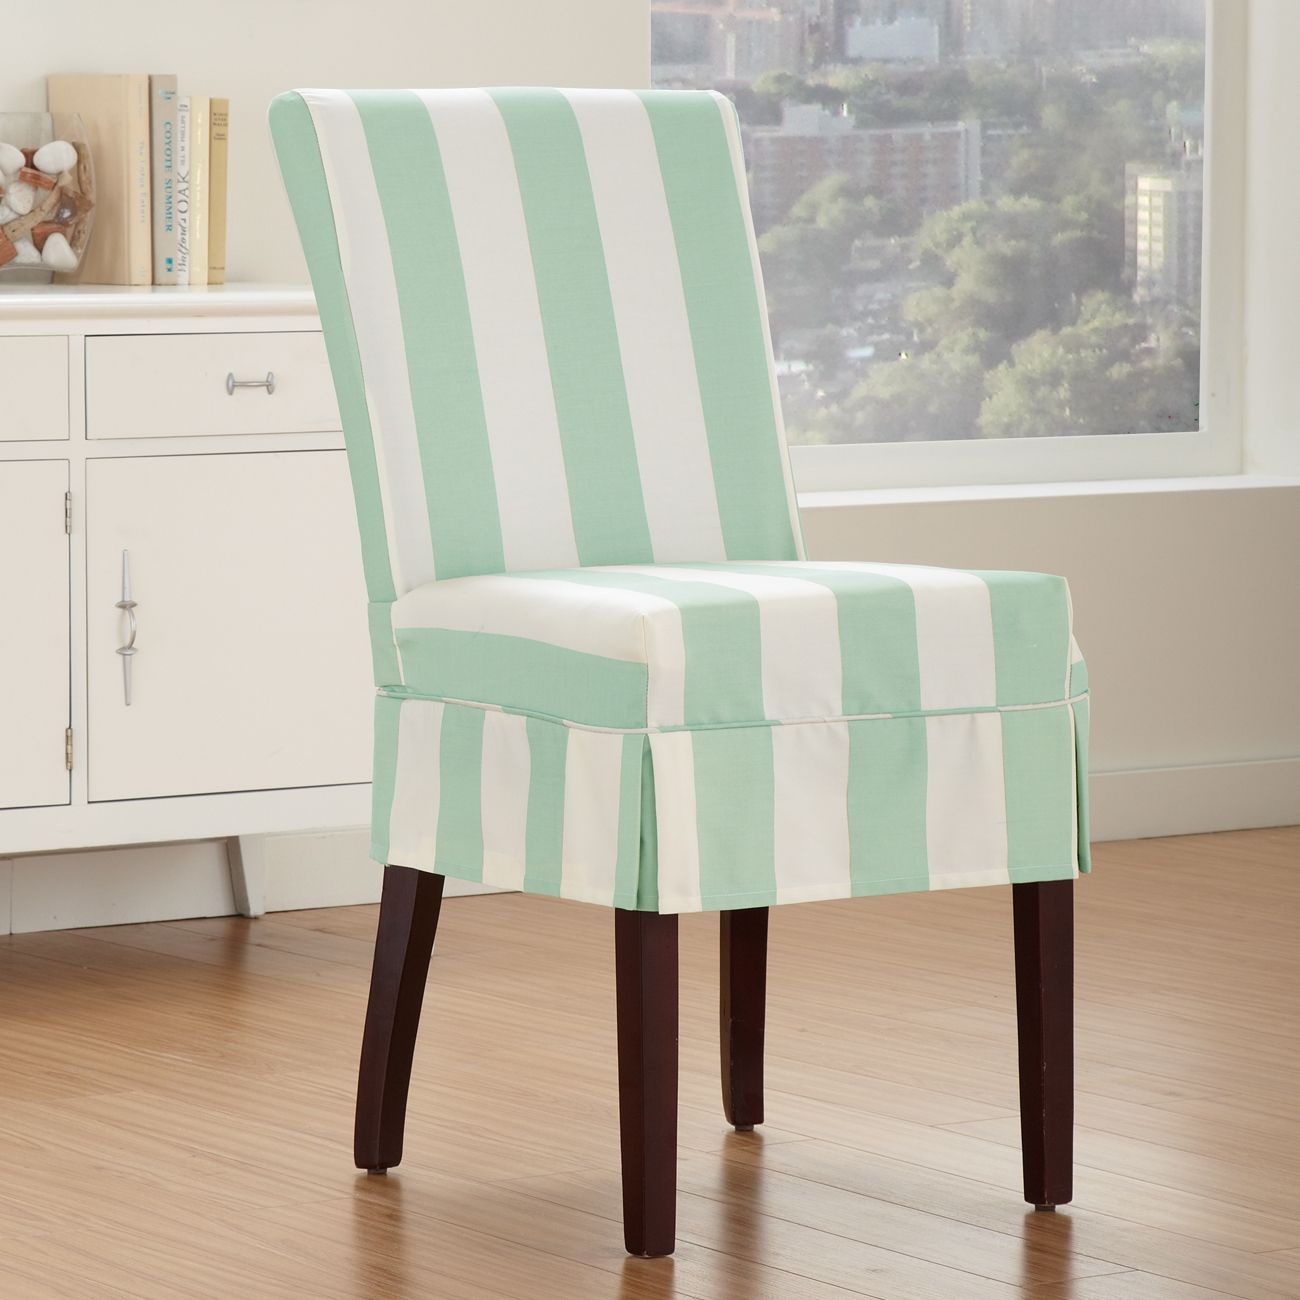 Striped Dining Room Chair Slipcovers Http Images11 Com